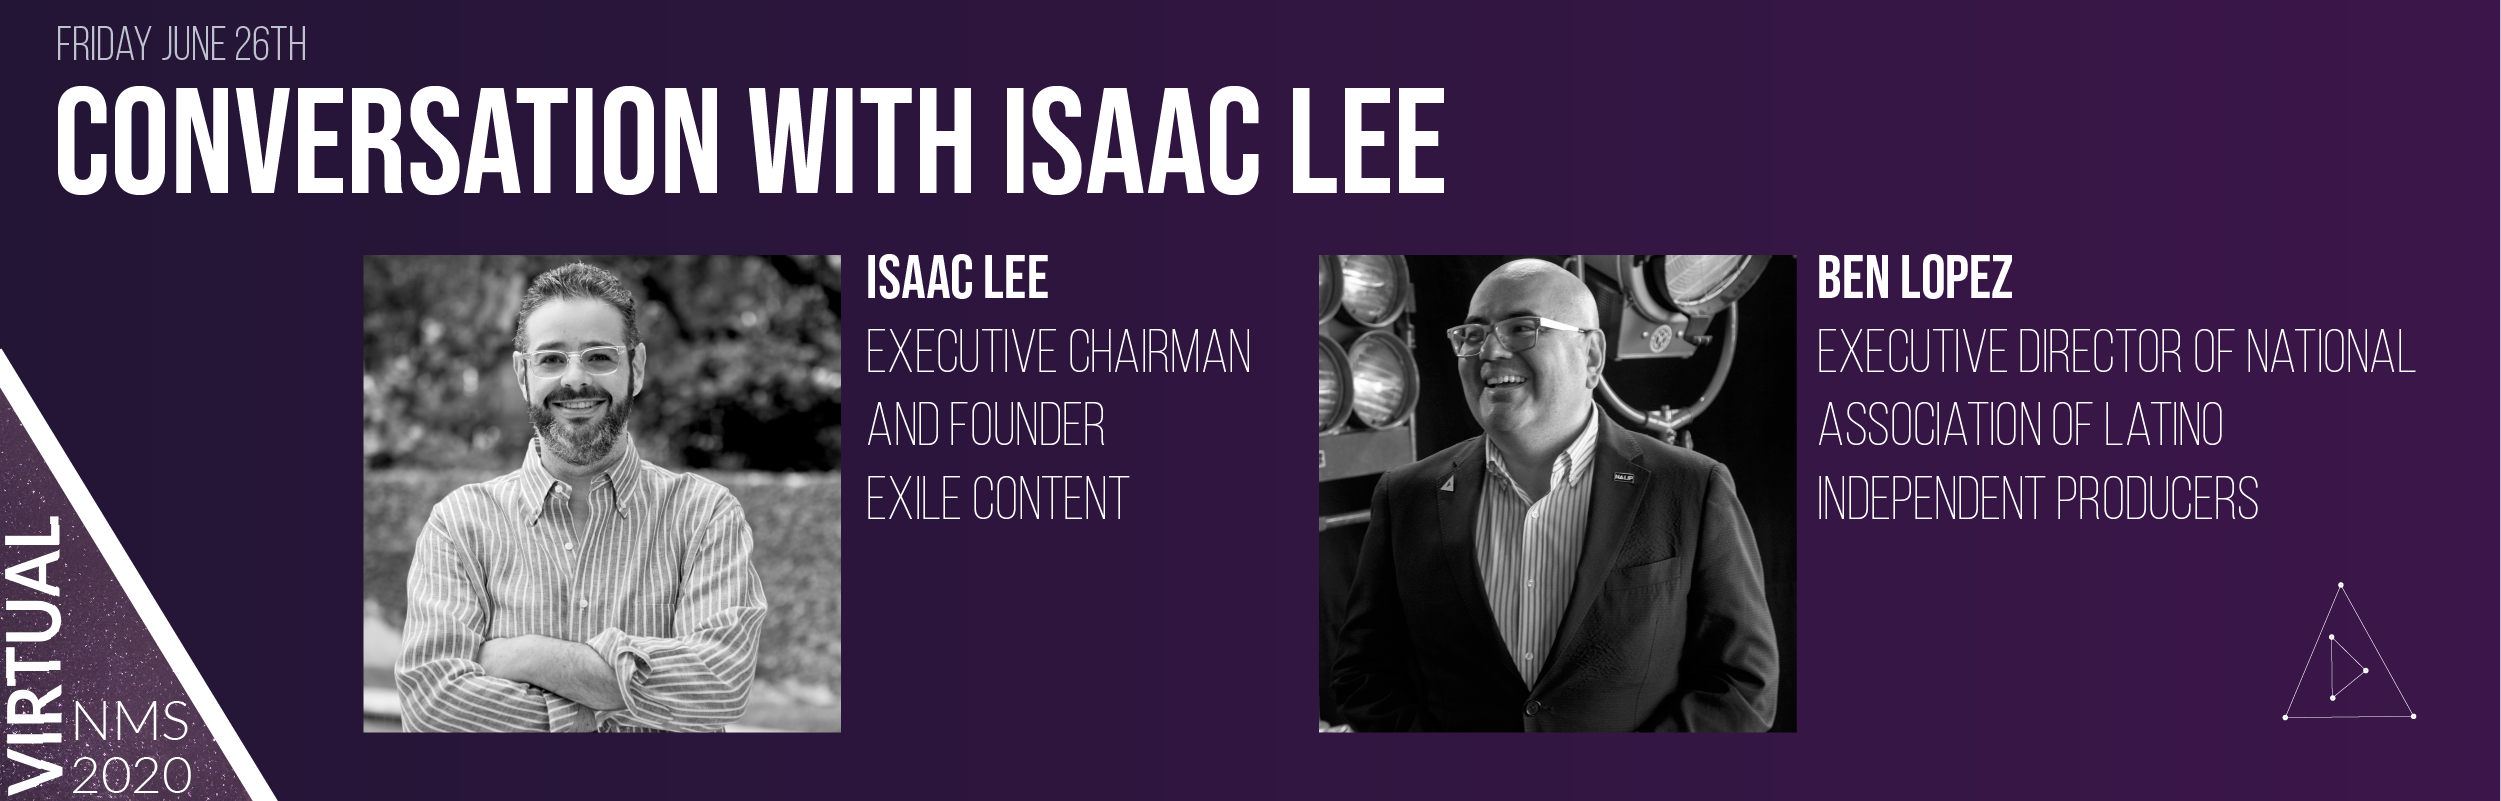 Isaac Lee Banner